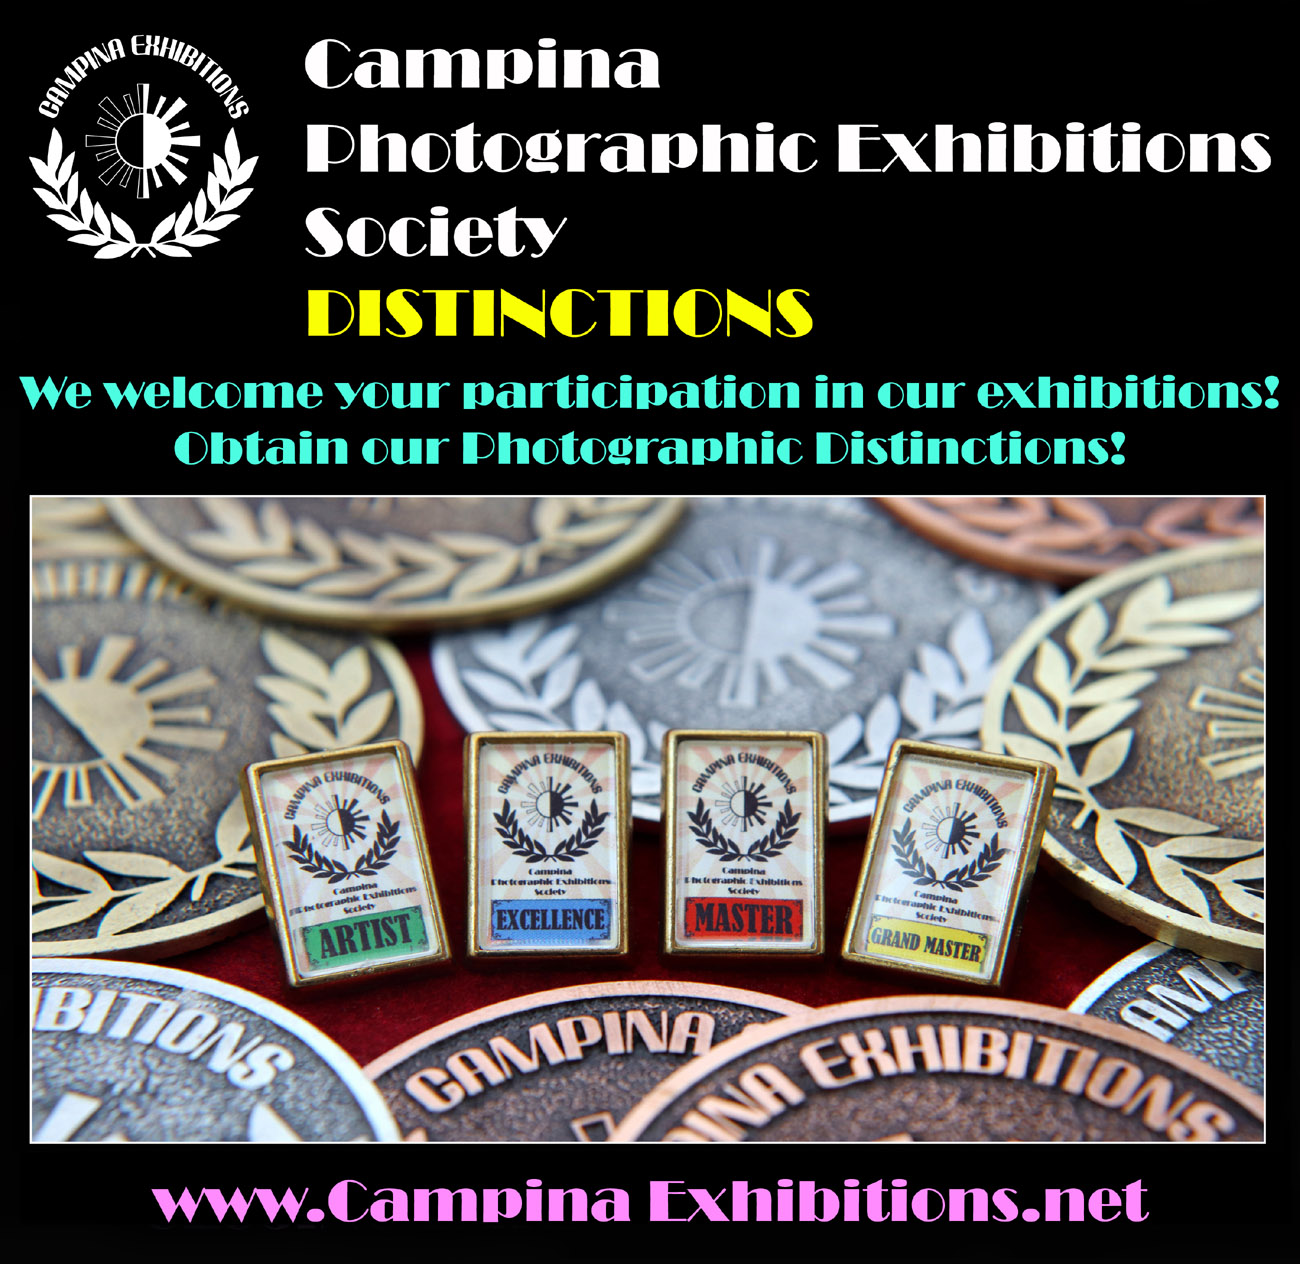 Campina Photographic Exhibitions Society Distinctions